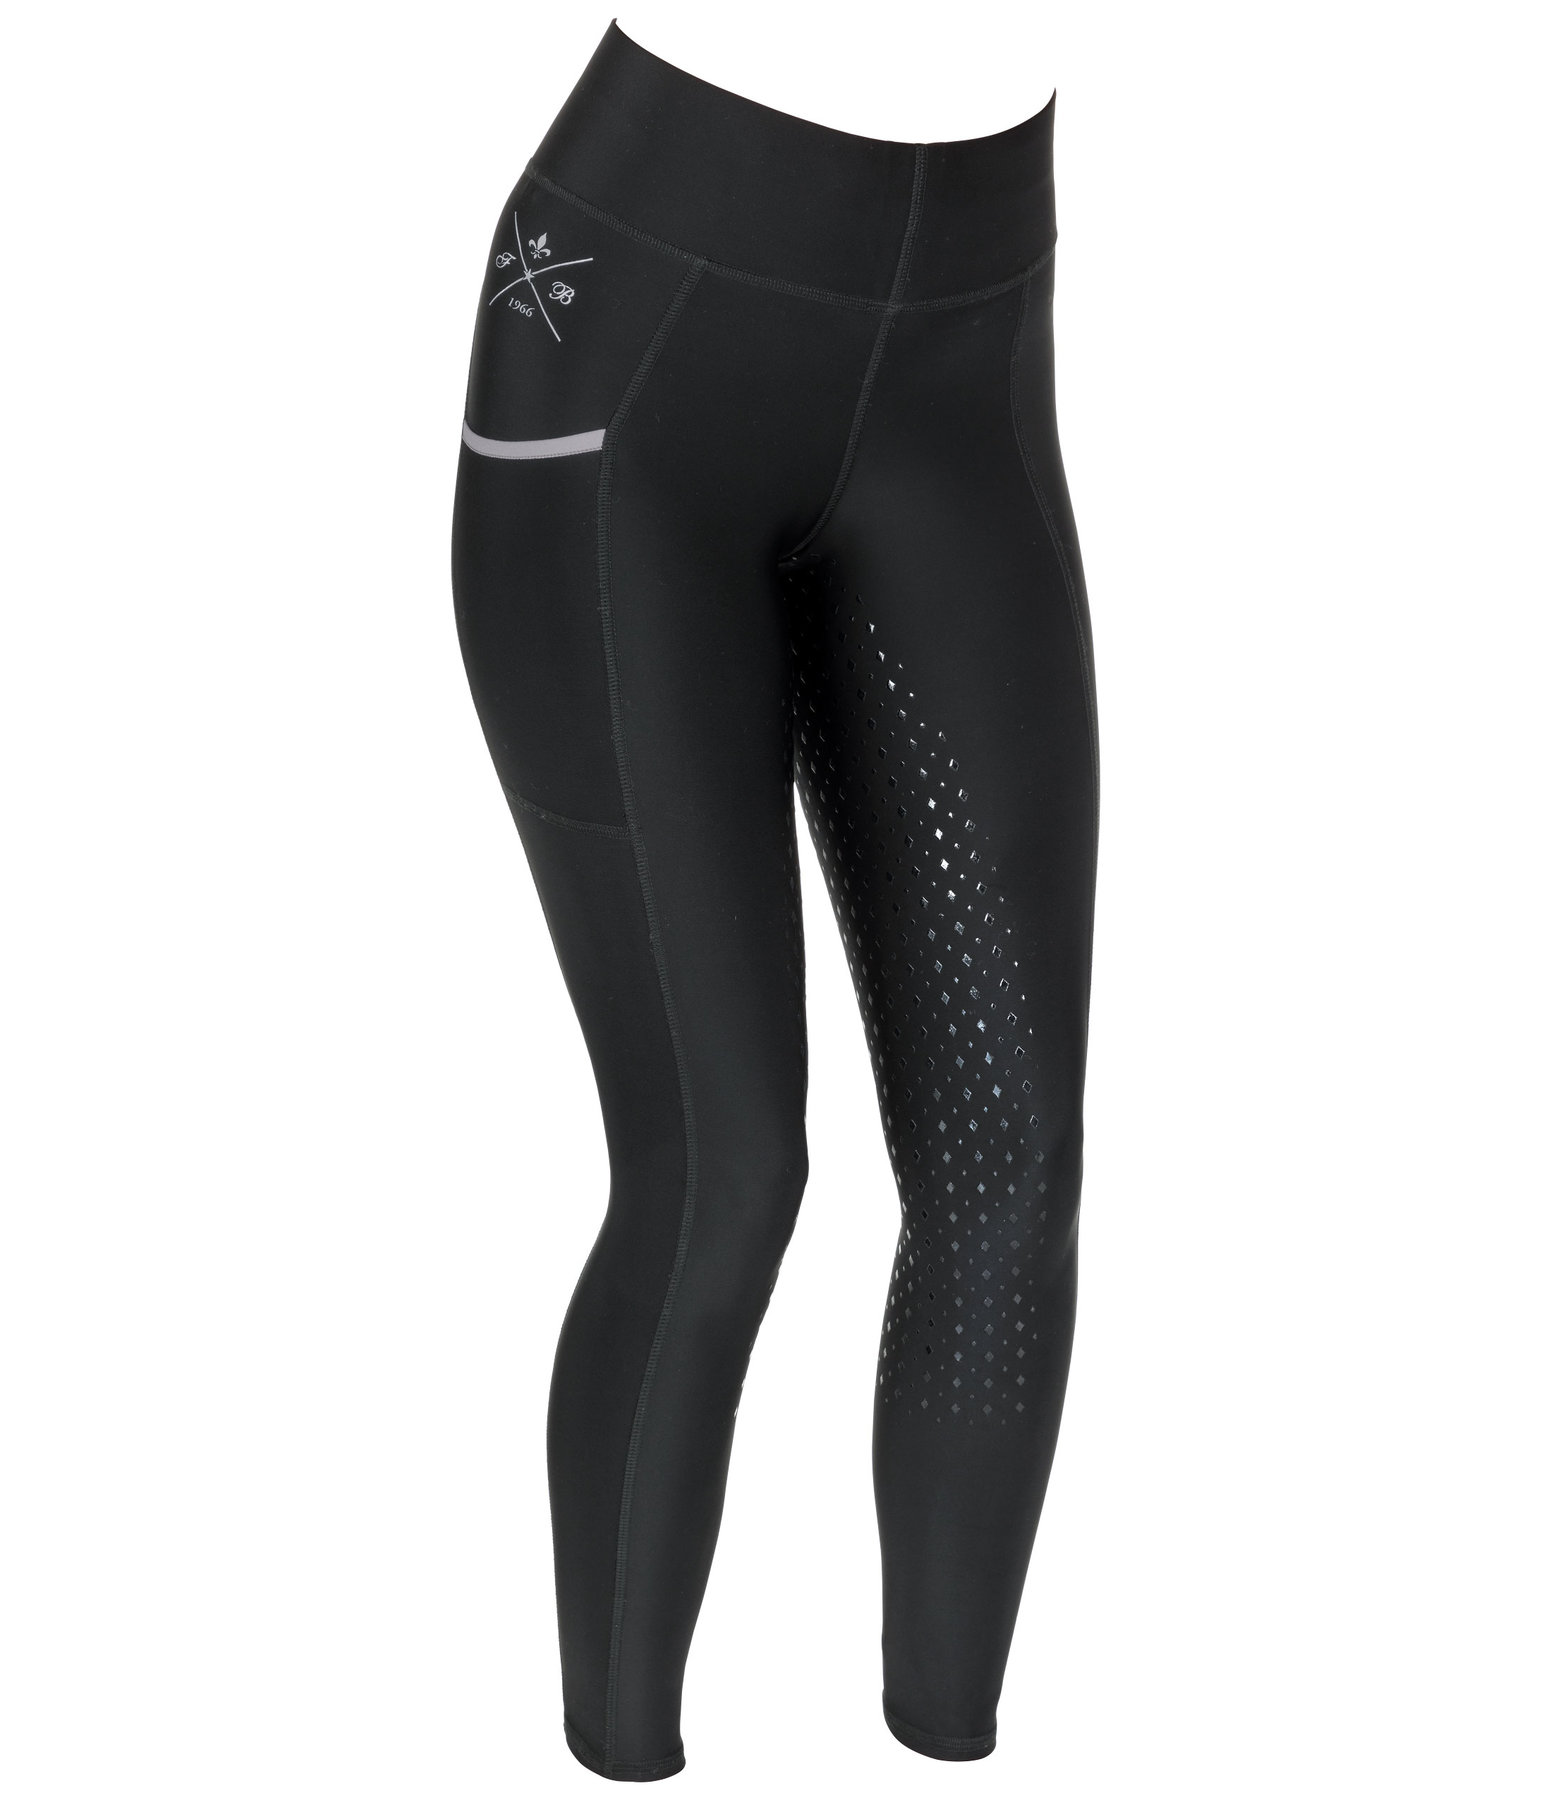 Grip-Vollbesatzreitleggings Liliana II